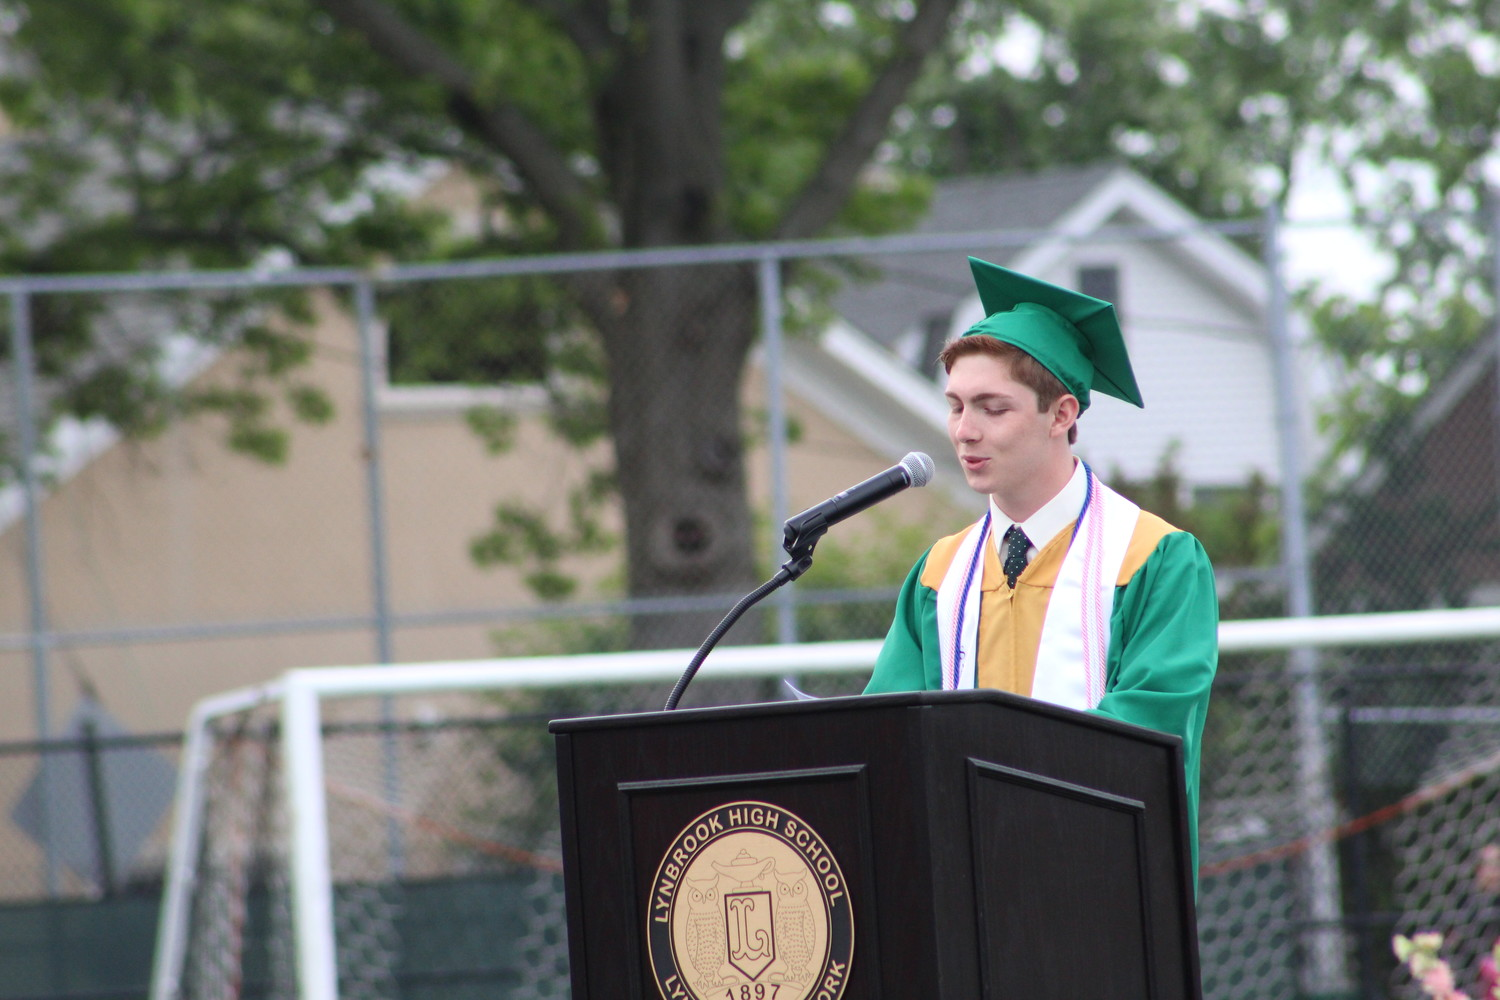 Salutatorian Jack Hunter shared lessons he learned from high school and from the Walt Disney Company movies.